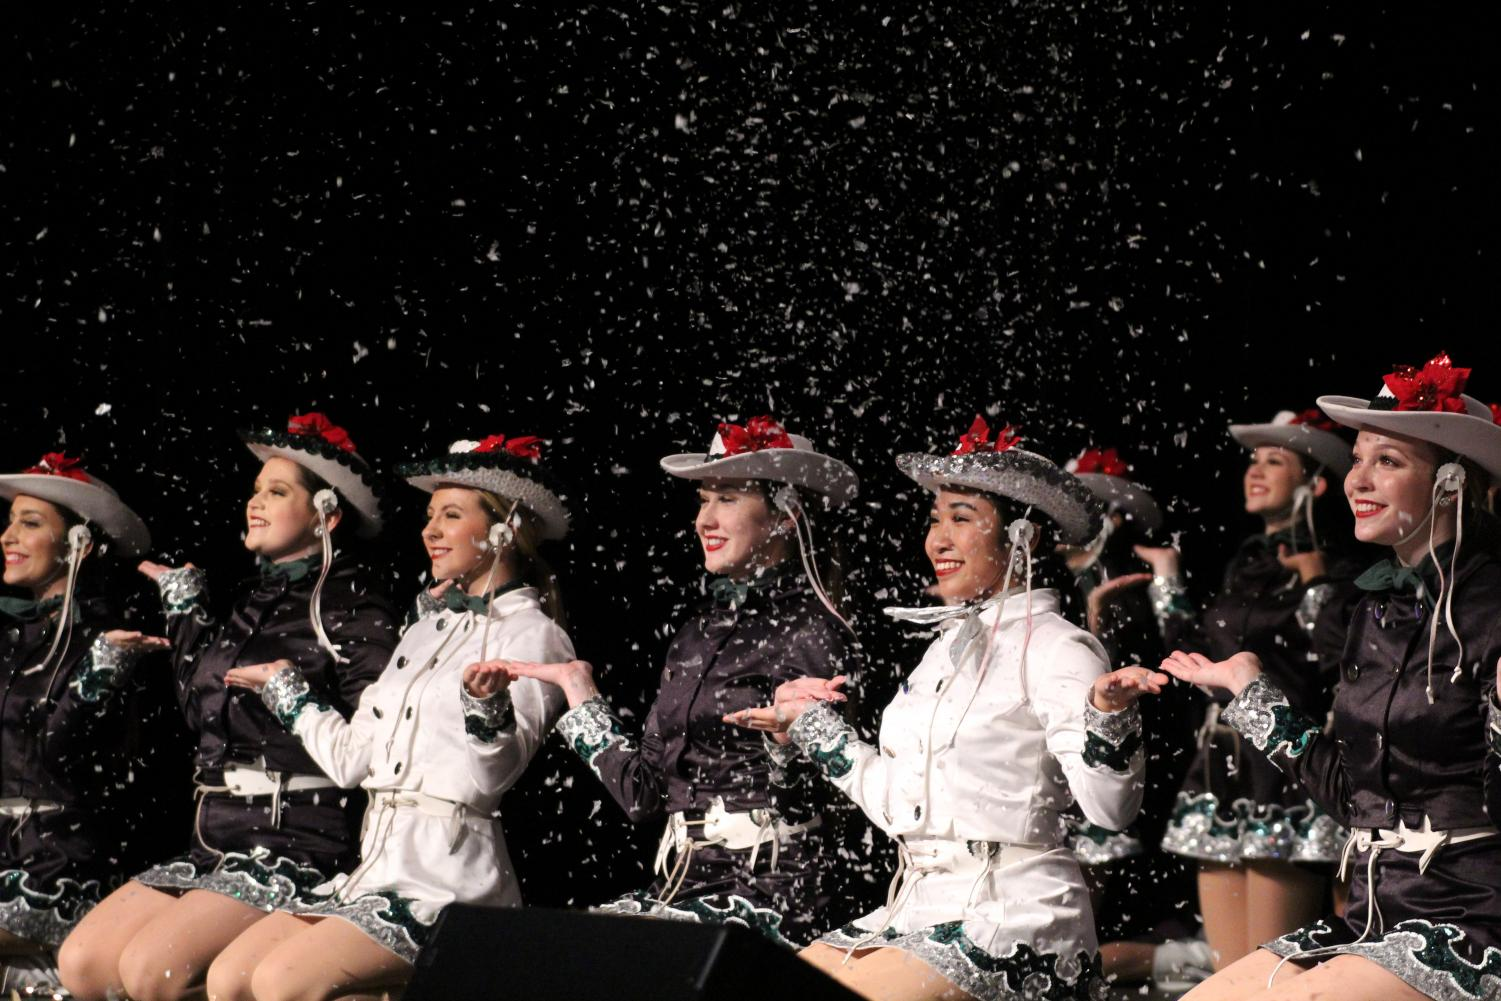 Smiling ear to ear, the celebrities finish out their holiday show with the grand finale. The show was sponsored by the celebrities, but the Spanish Honor Society, PALS, theatre, choir, both the CPMS and CPHS dance classes and the CPMS Crimson Cadets participated.